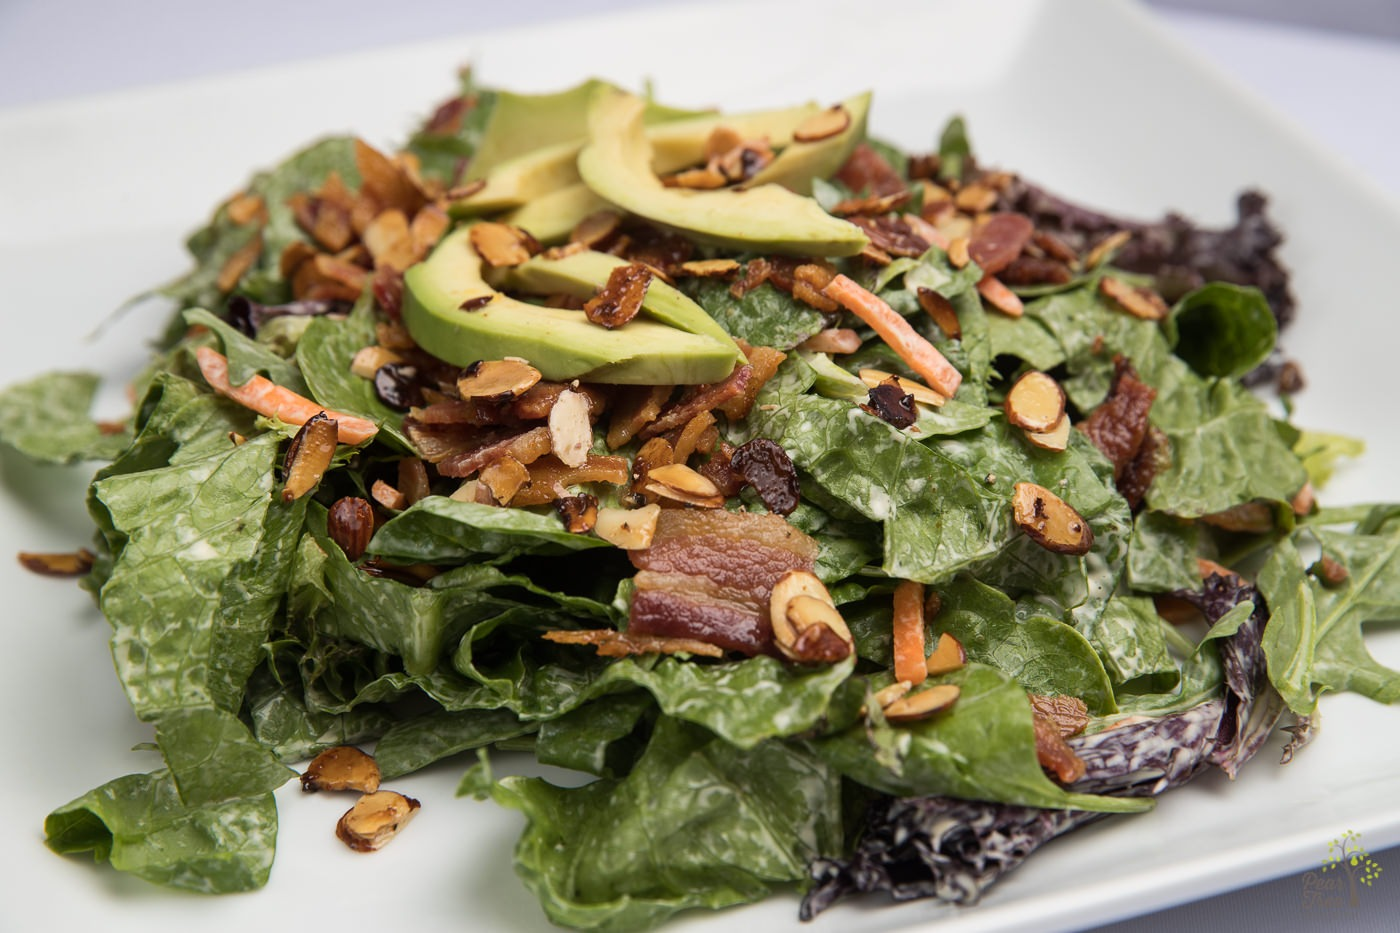 Delicious spring salad with fresh avocado slices, fried bacon, almond slivers, raisins, and carrot slices created by Divine Taste of Heaven